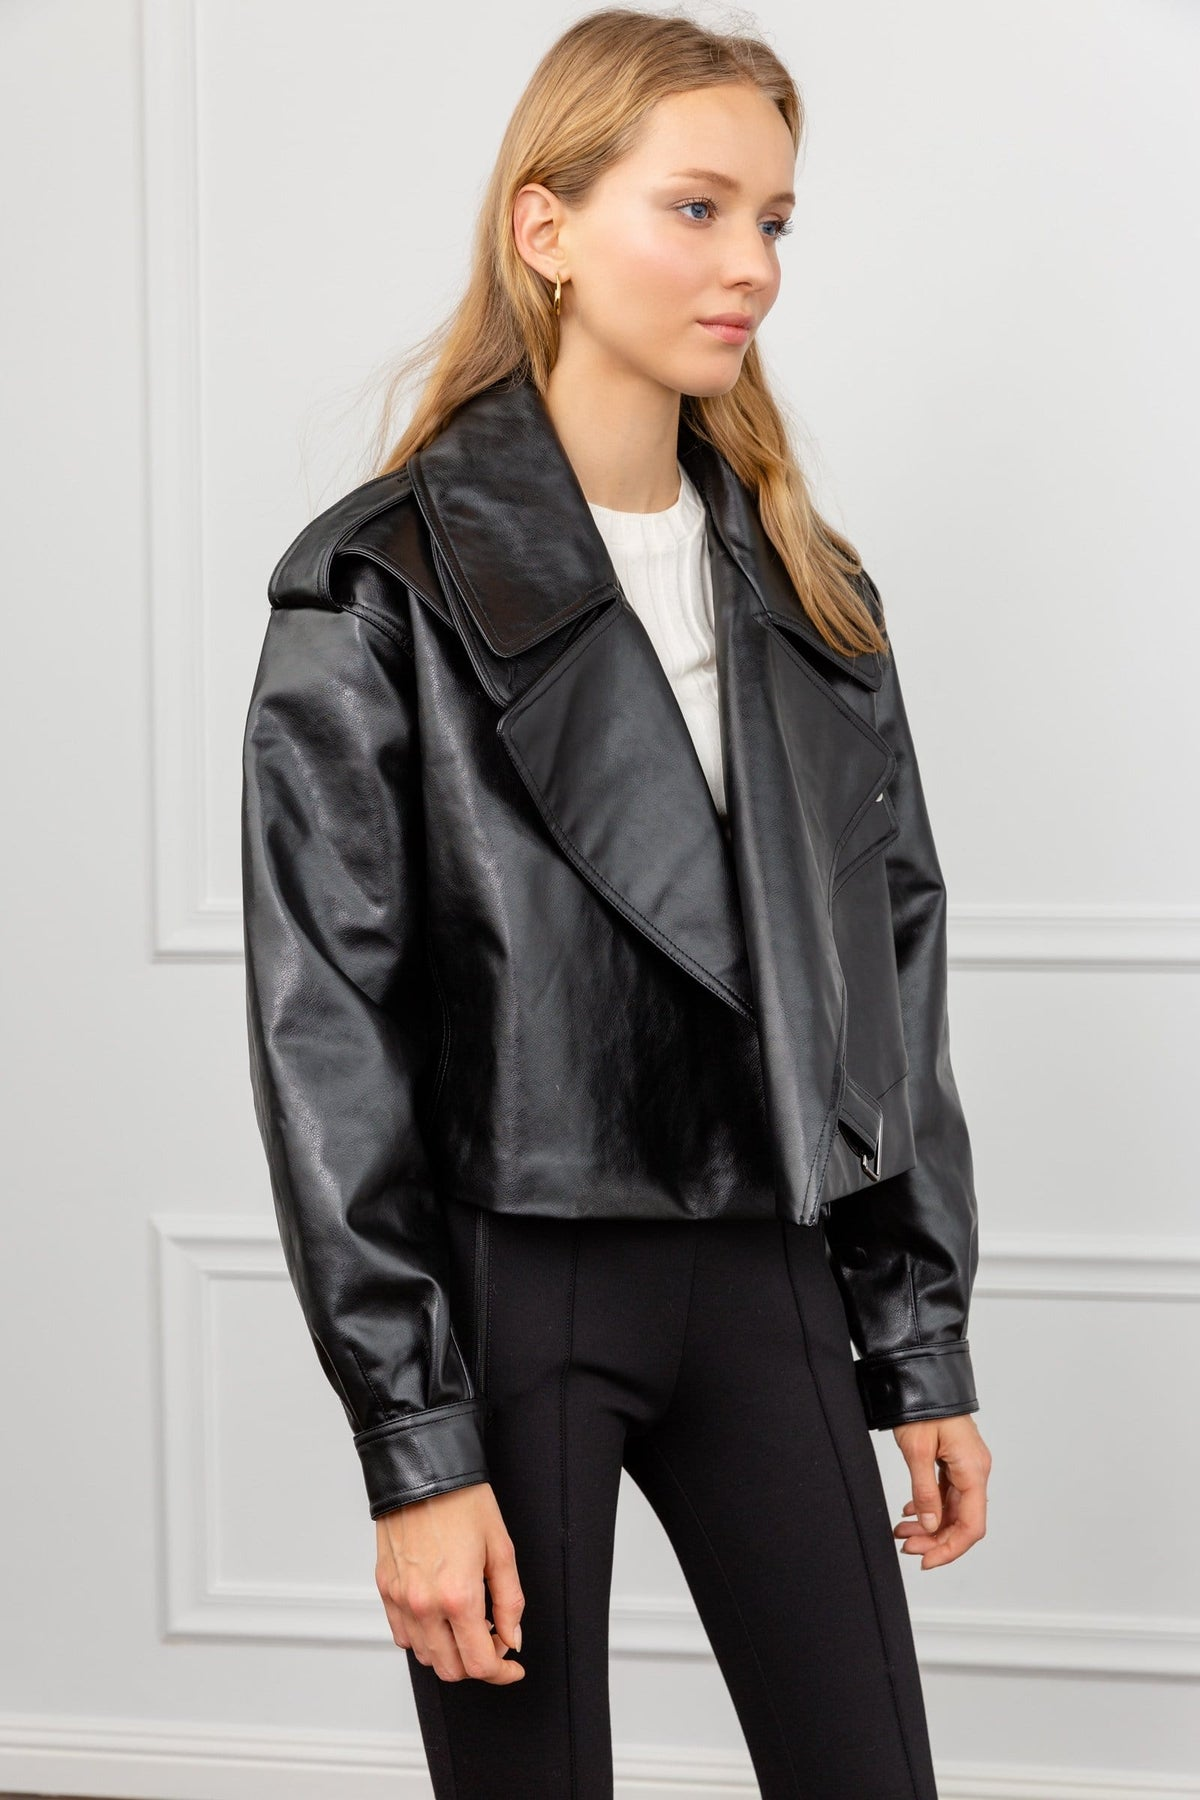 Alexa Black Oversize Vegan Leather Jacket